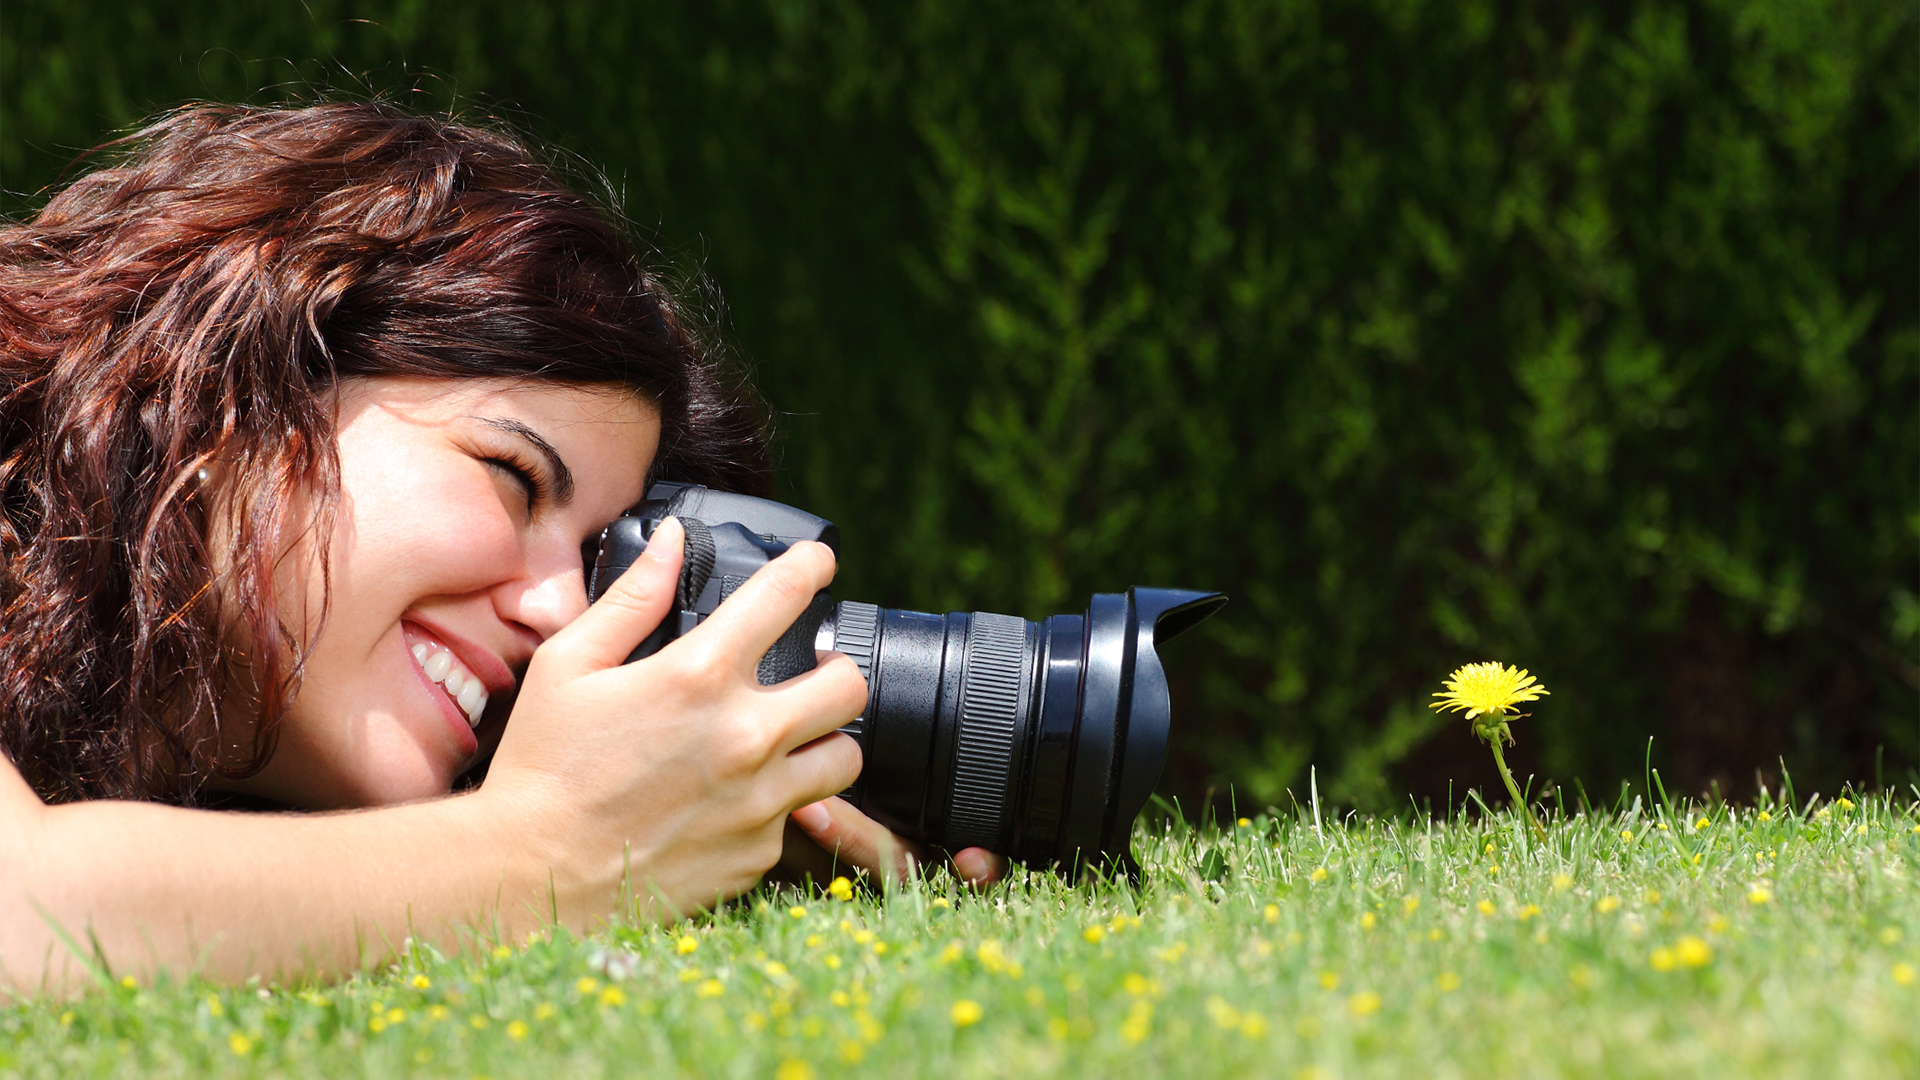 Woman taking photography | Sheknows.com